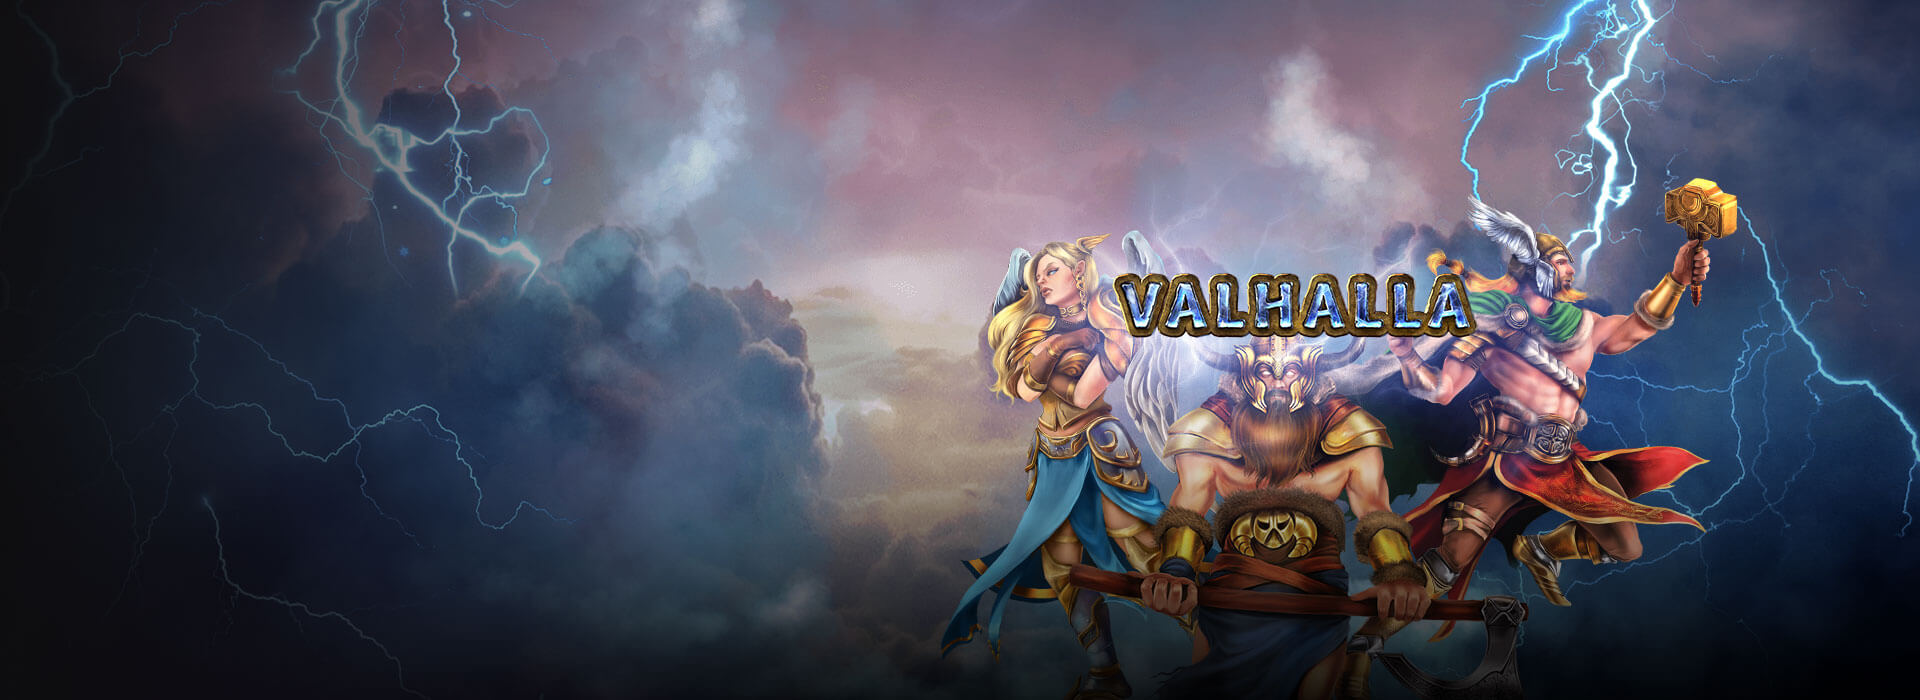 Visit Valhalla and feast with gods!